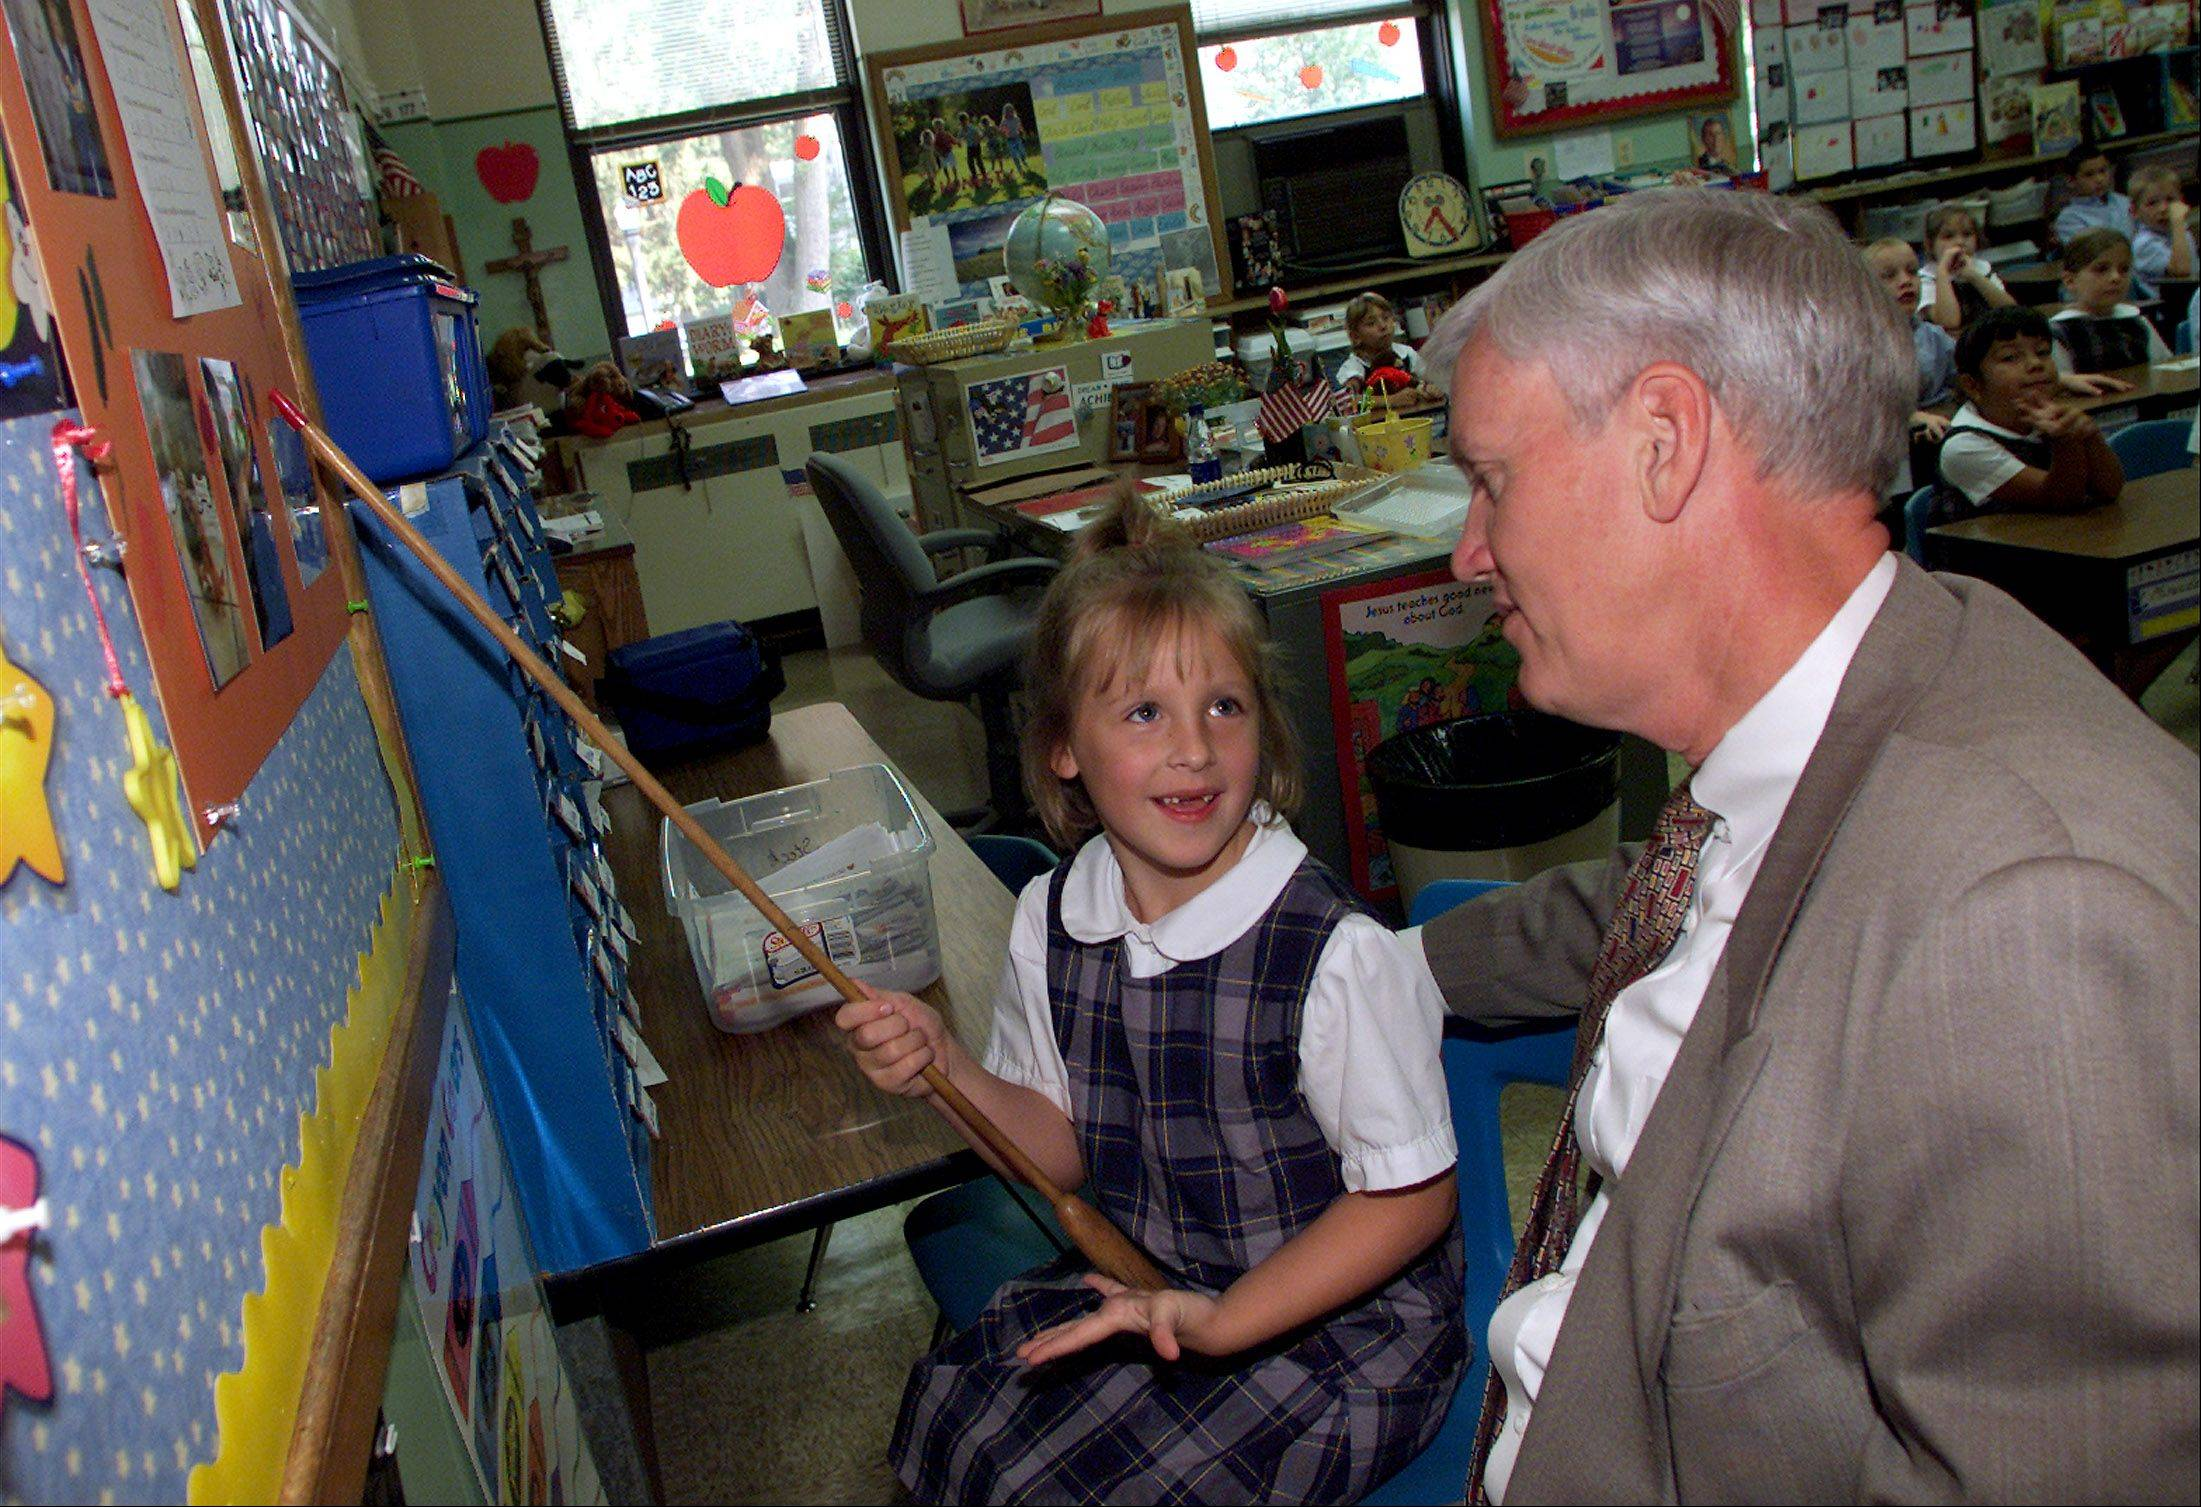 Longtime Ss. Peter and Paul School Principal Frank Glowaty hears a presentation from a student in this 2003 photo. Glowaty announced Thursday night that he will retire at the end of this school year after 39 years as principal at the school affiliated with Naperville's oldest Catholic church.